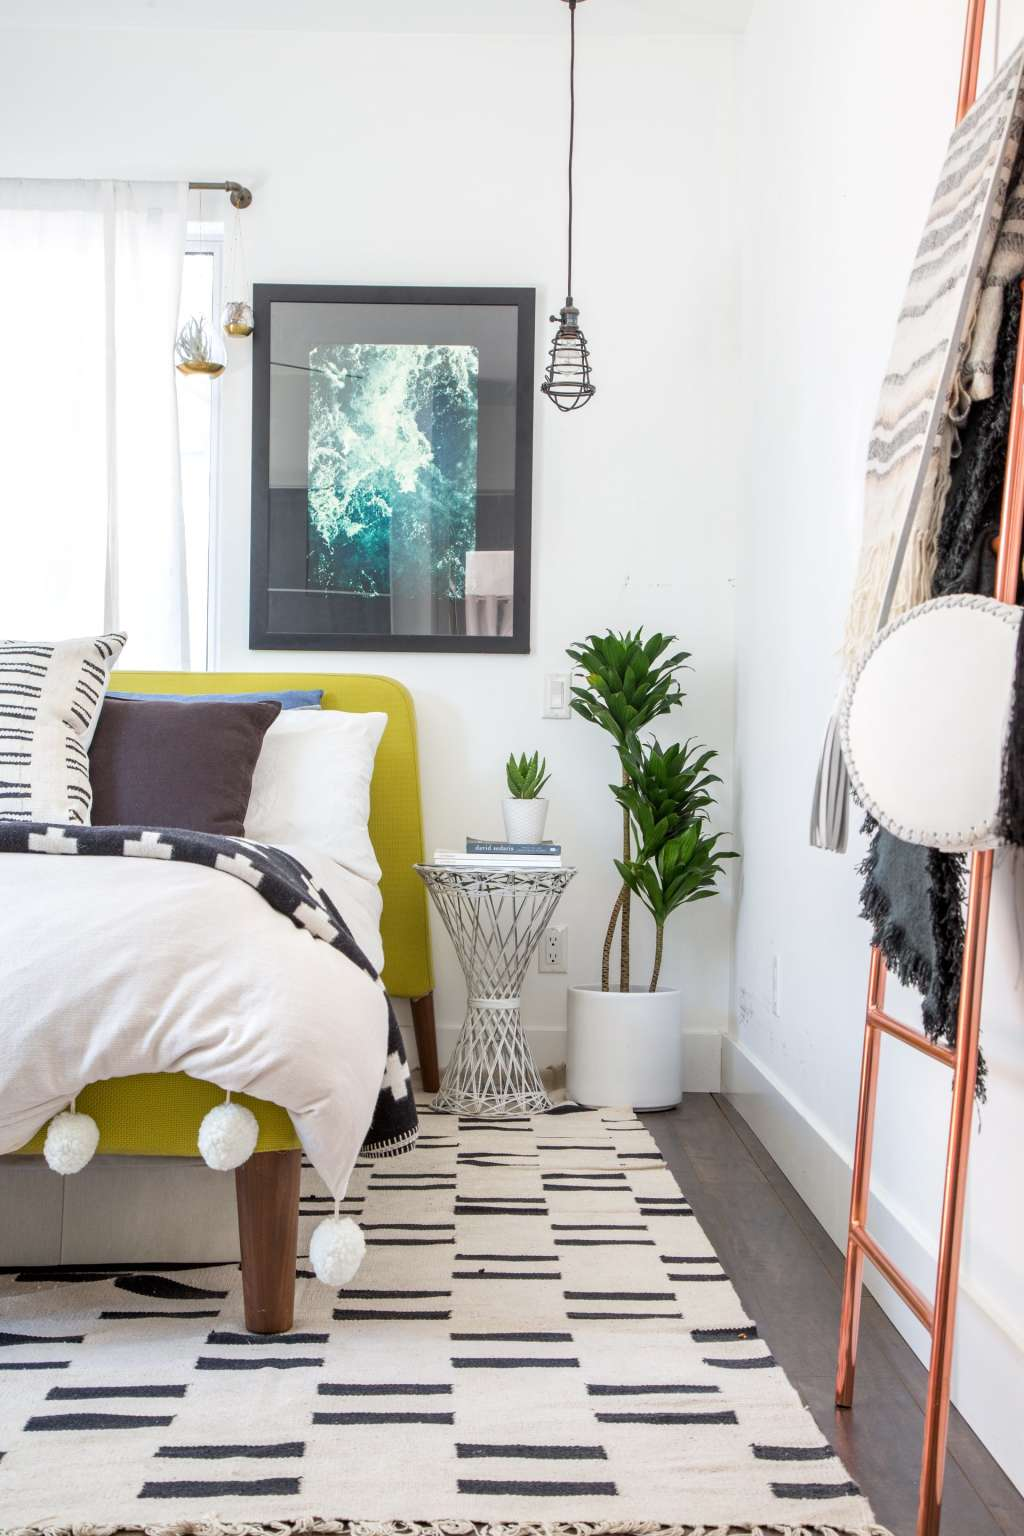 15 Smart Bedroom Styling Tips from House Tours